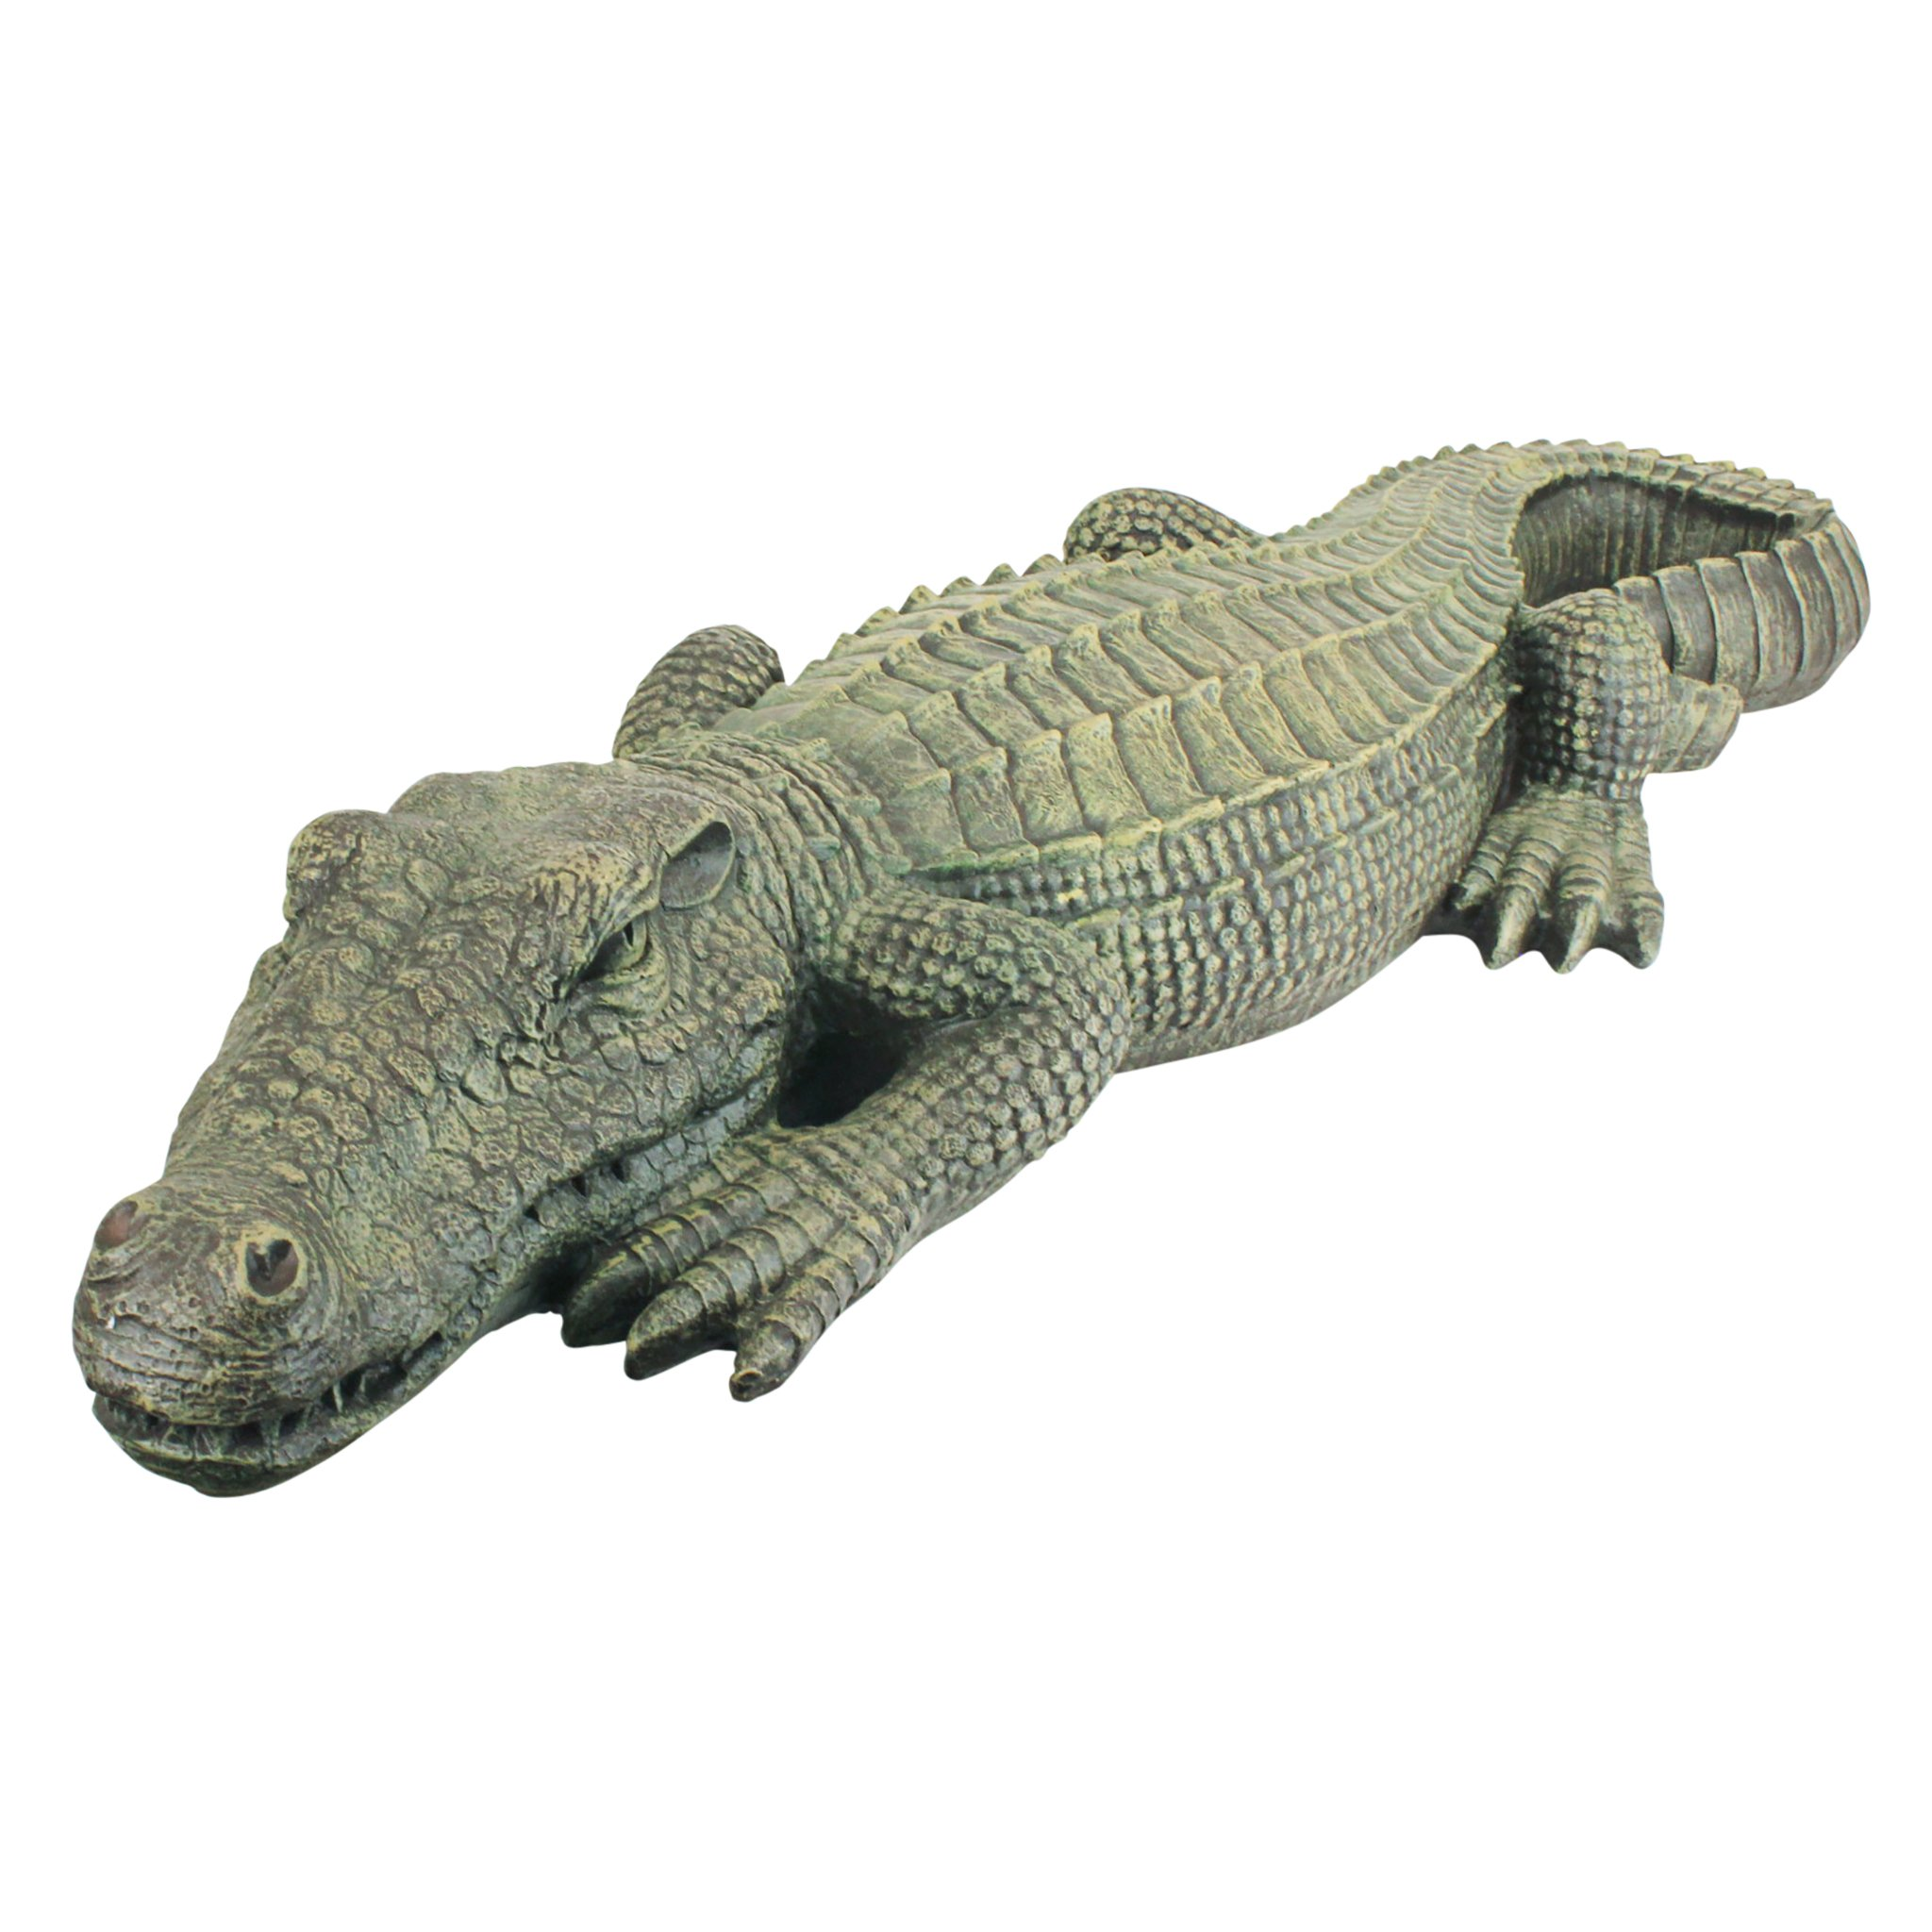 Design Toscano The Swamp Beast Lawn Alligator Crocodile Garden Sculpture, 37 Inch, Polyresin, Full Color